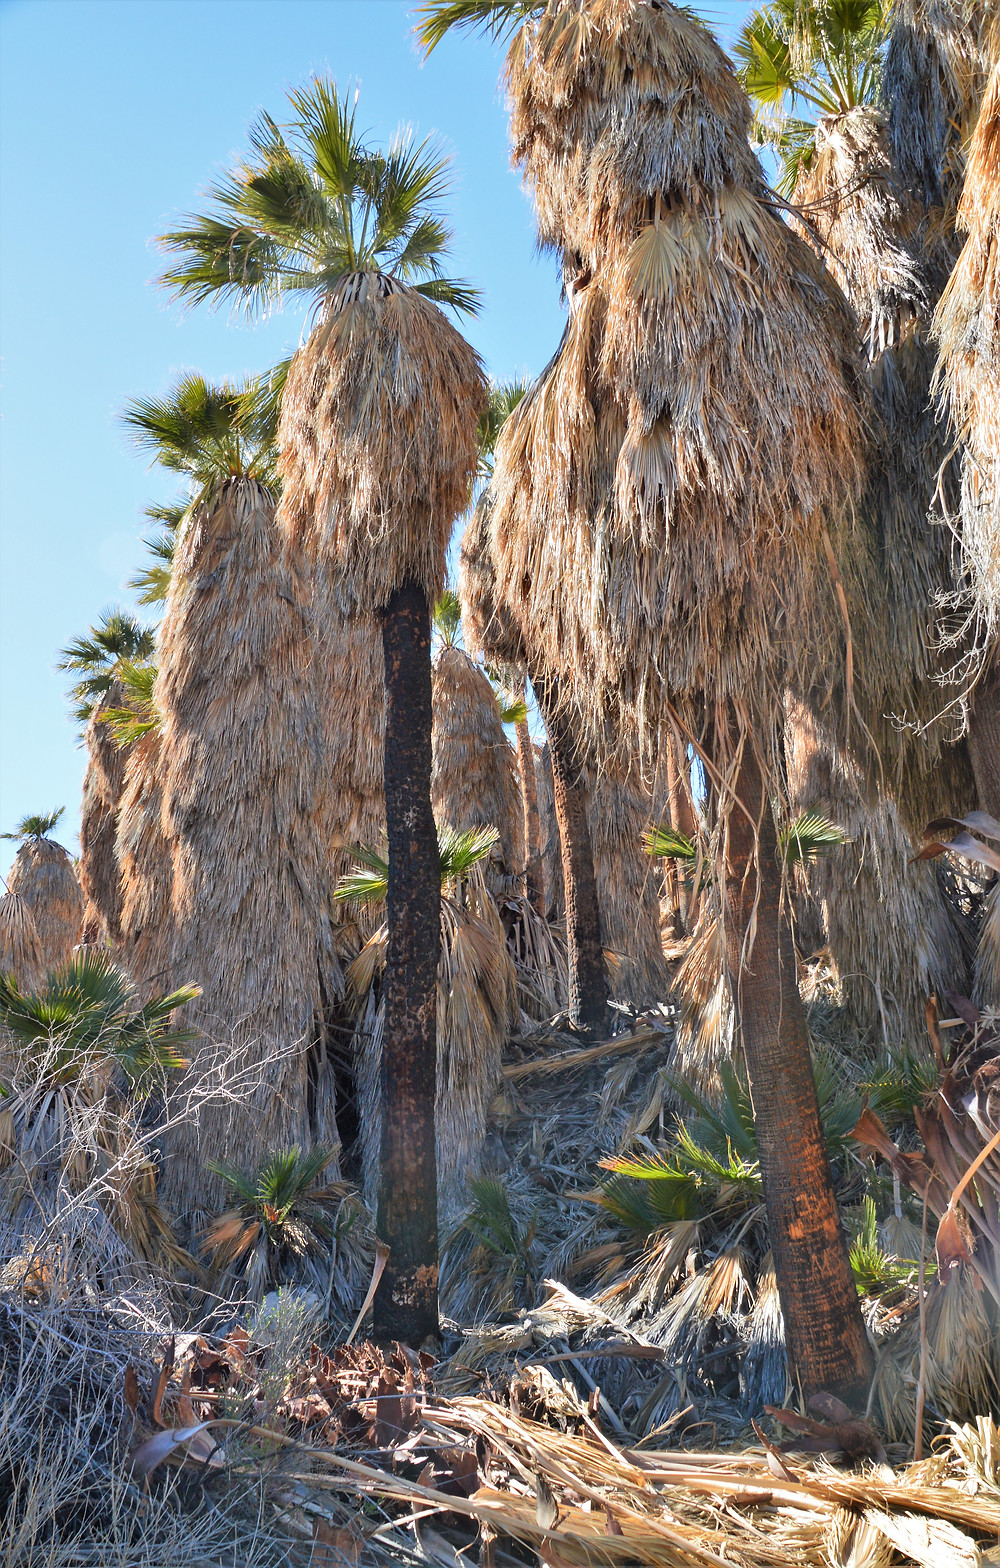 Bear Creek Palm Oasis supported by spring fed streams from the canyons and Santa Rosa Mountains